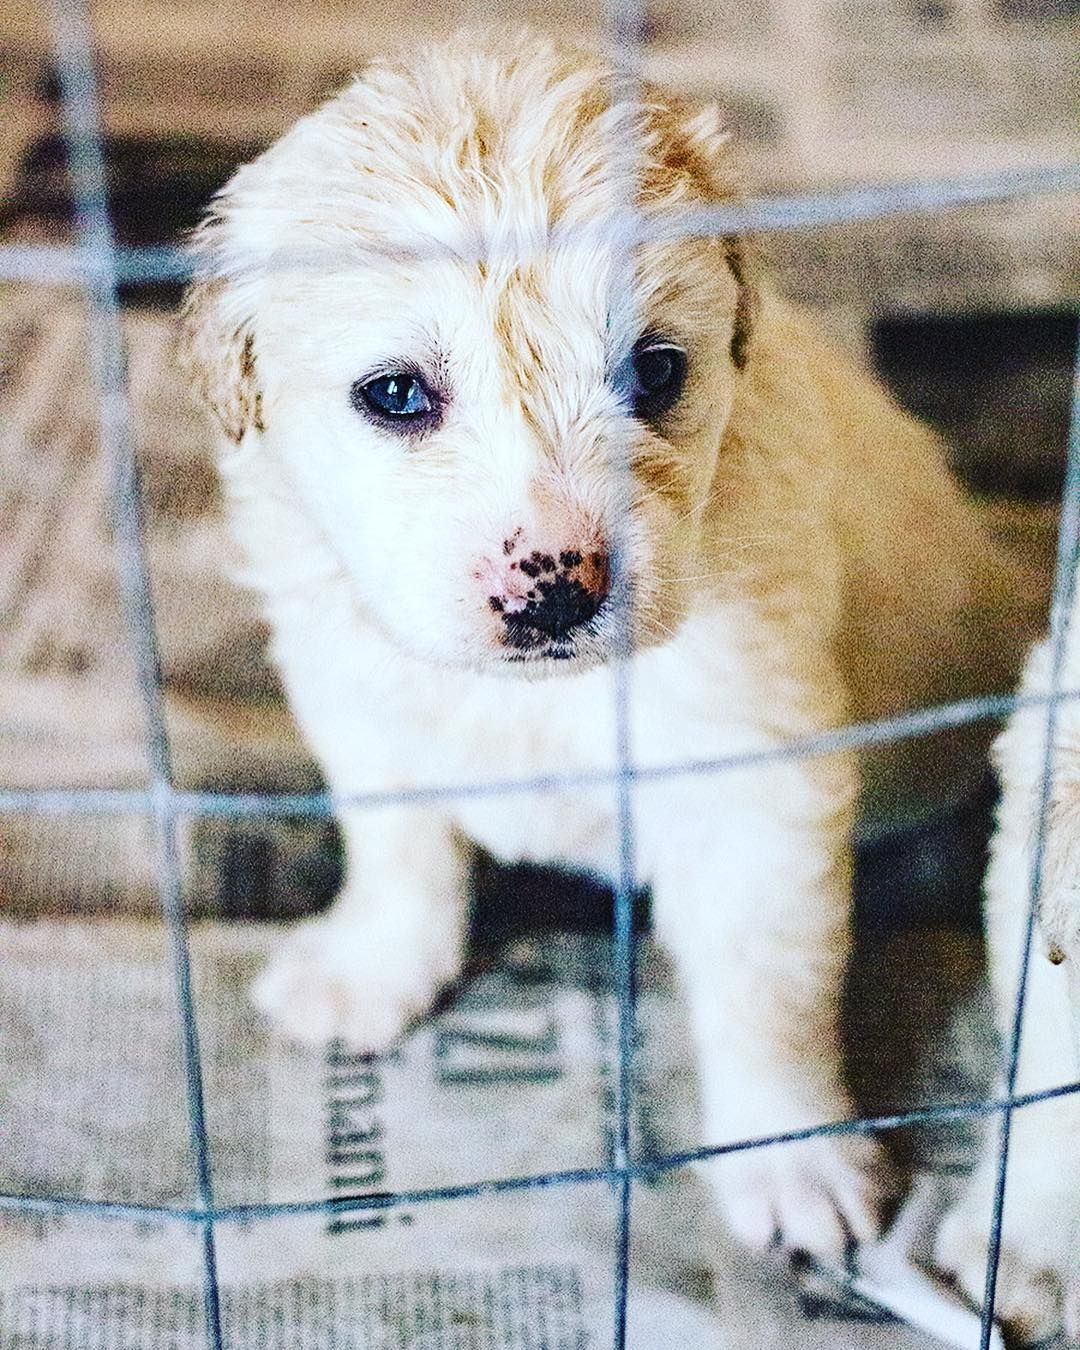 Instagram emptycages_photography // This puppy was 40